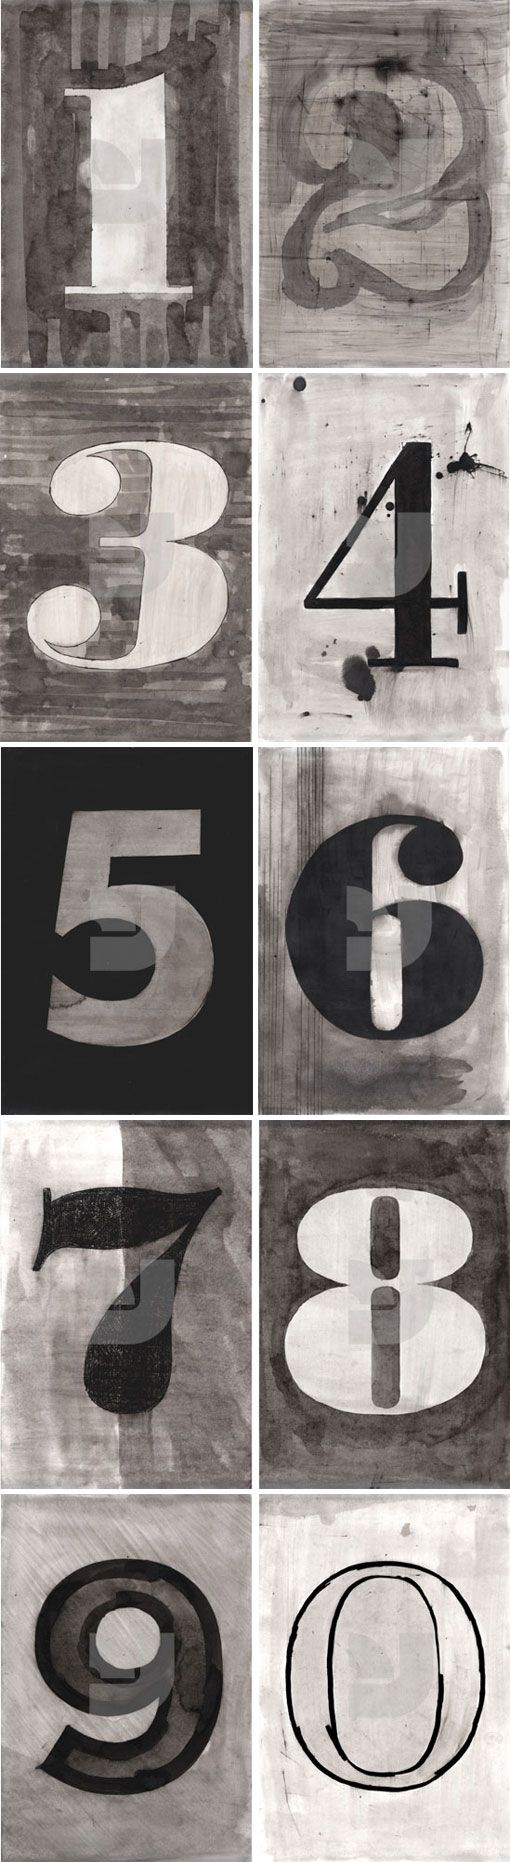 these look like numbers my husband might paint if he were into type